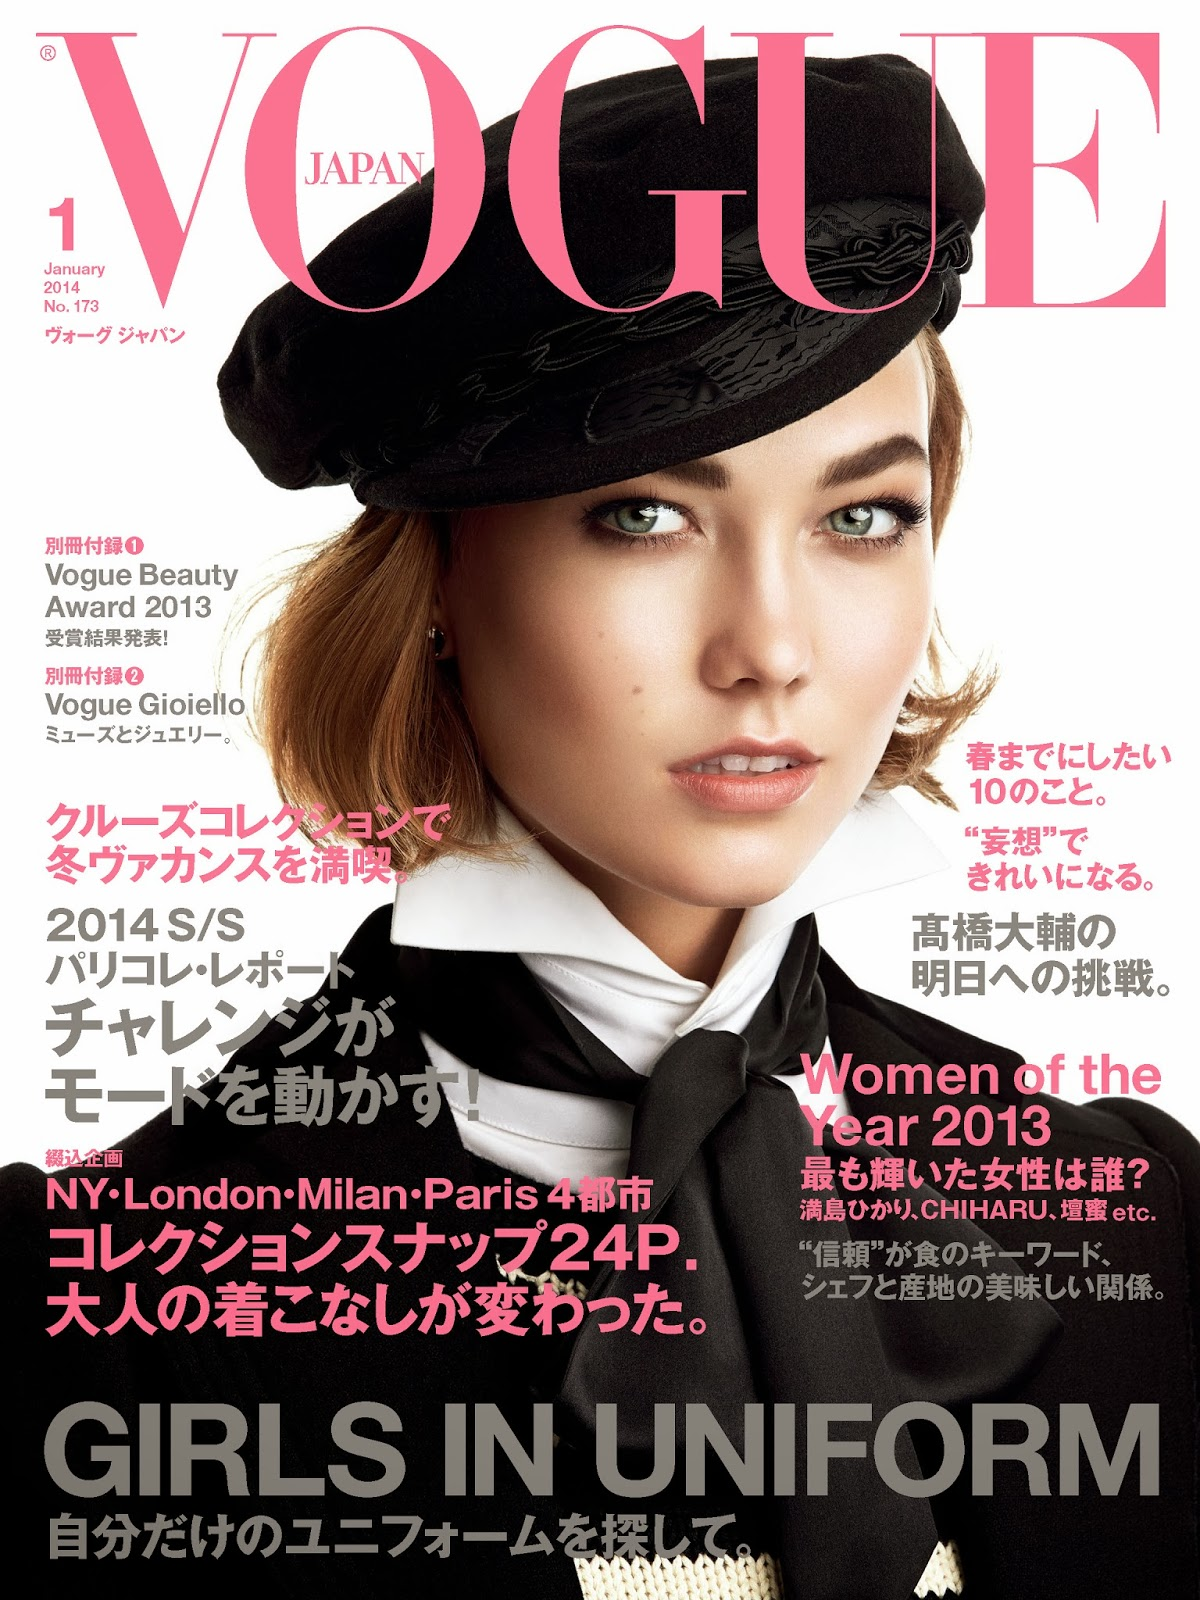 thinking sporty: karlie kloss by patrick demarchelier for ... Karlie Kloss Vogue Cover